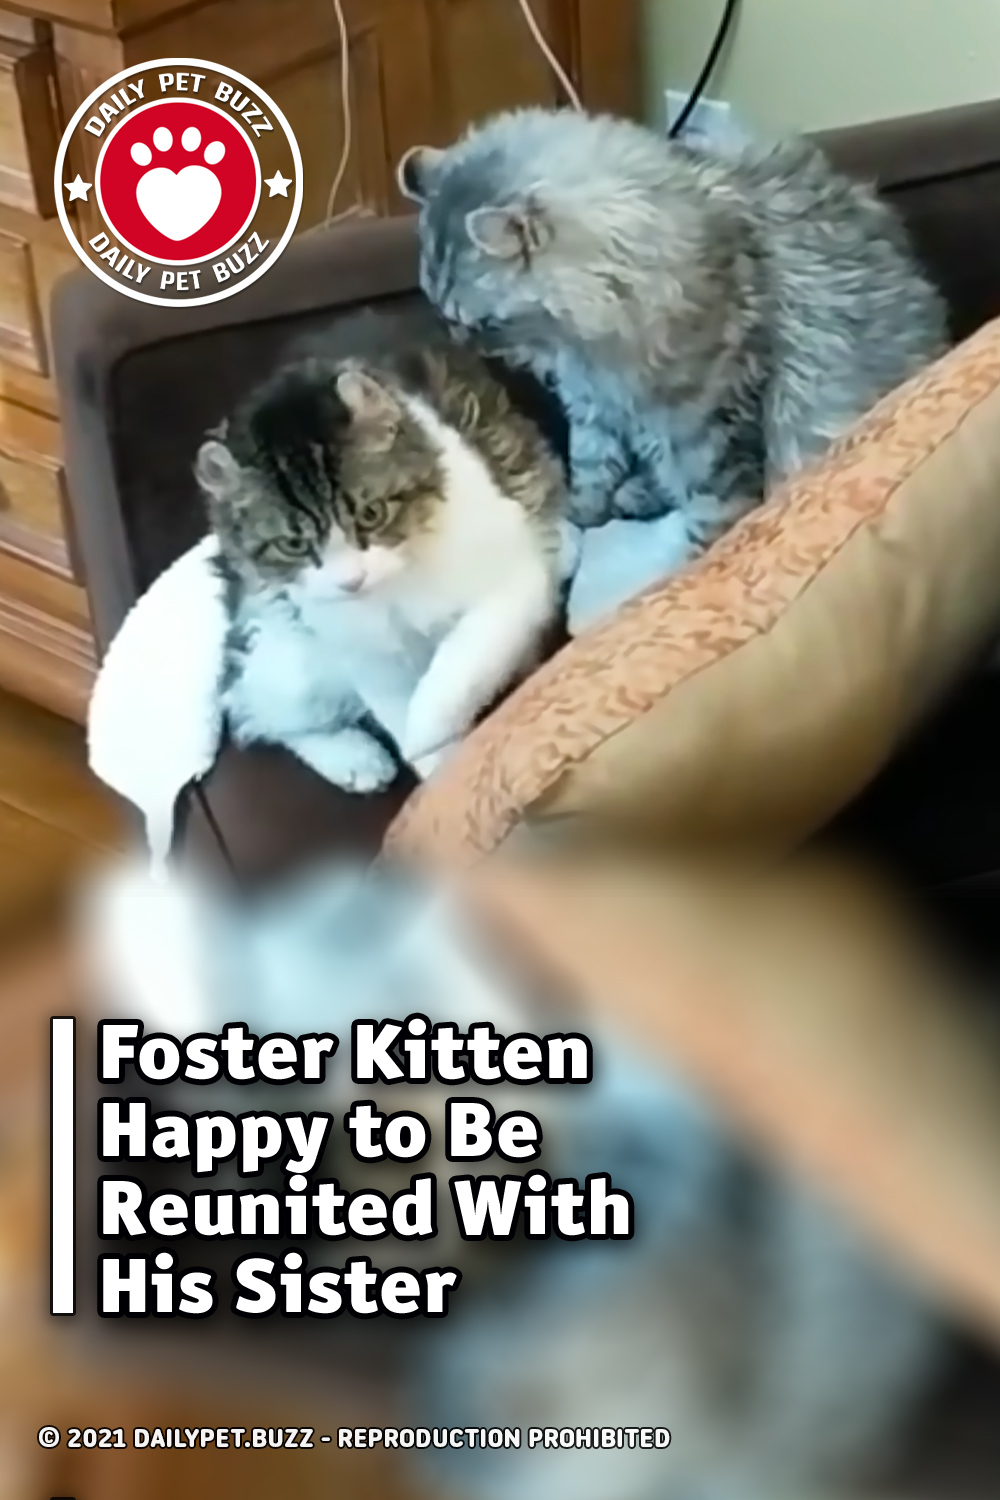 Foster Kitten Happy to Be Reunited With His Sister